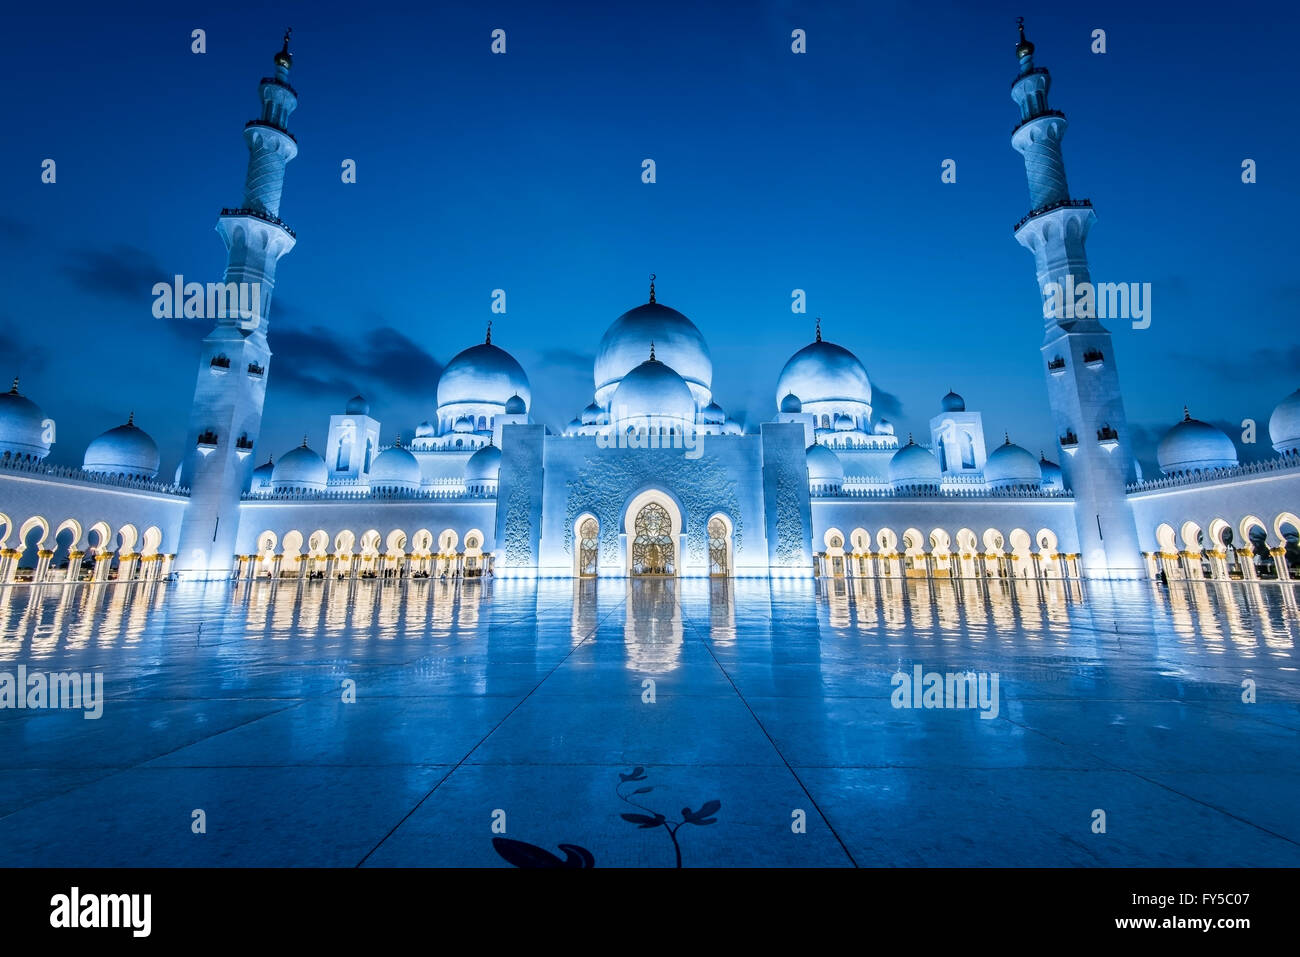 Sheikh Zayed Grand Mosque, Abu Dhabi, The largest mosque in the United Arab Emirates - Stock Image